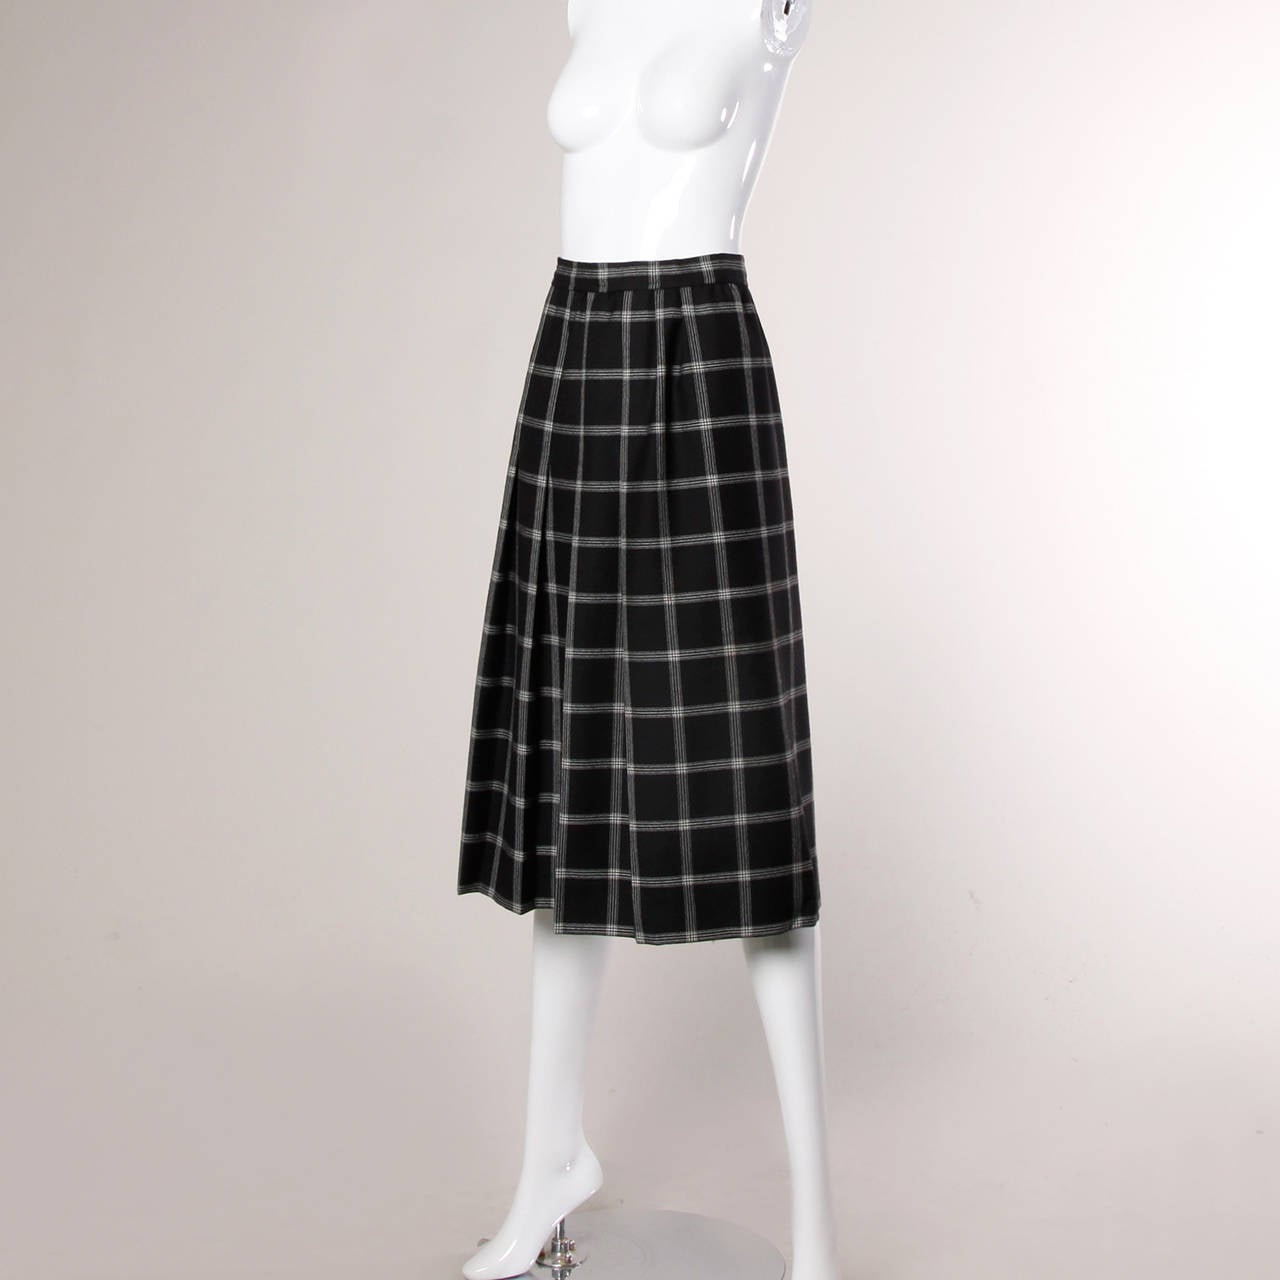 Koos Van Der Akker Vintage Black + White Plaid Wool Skirt 2